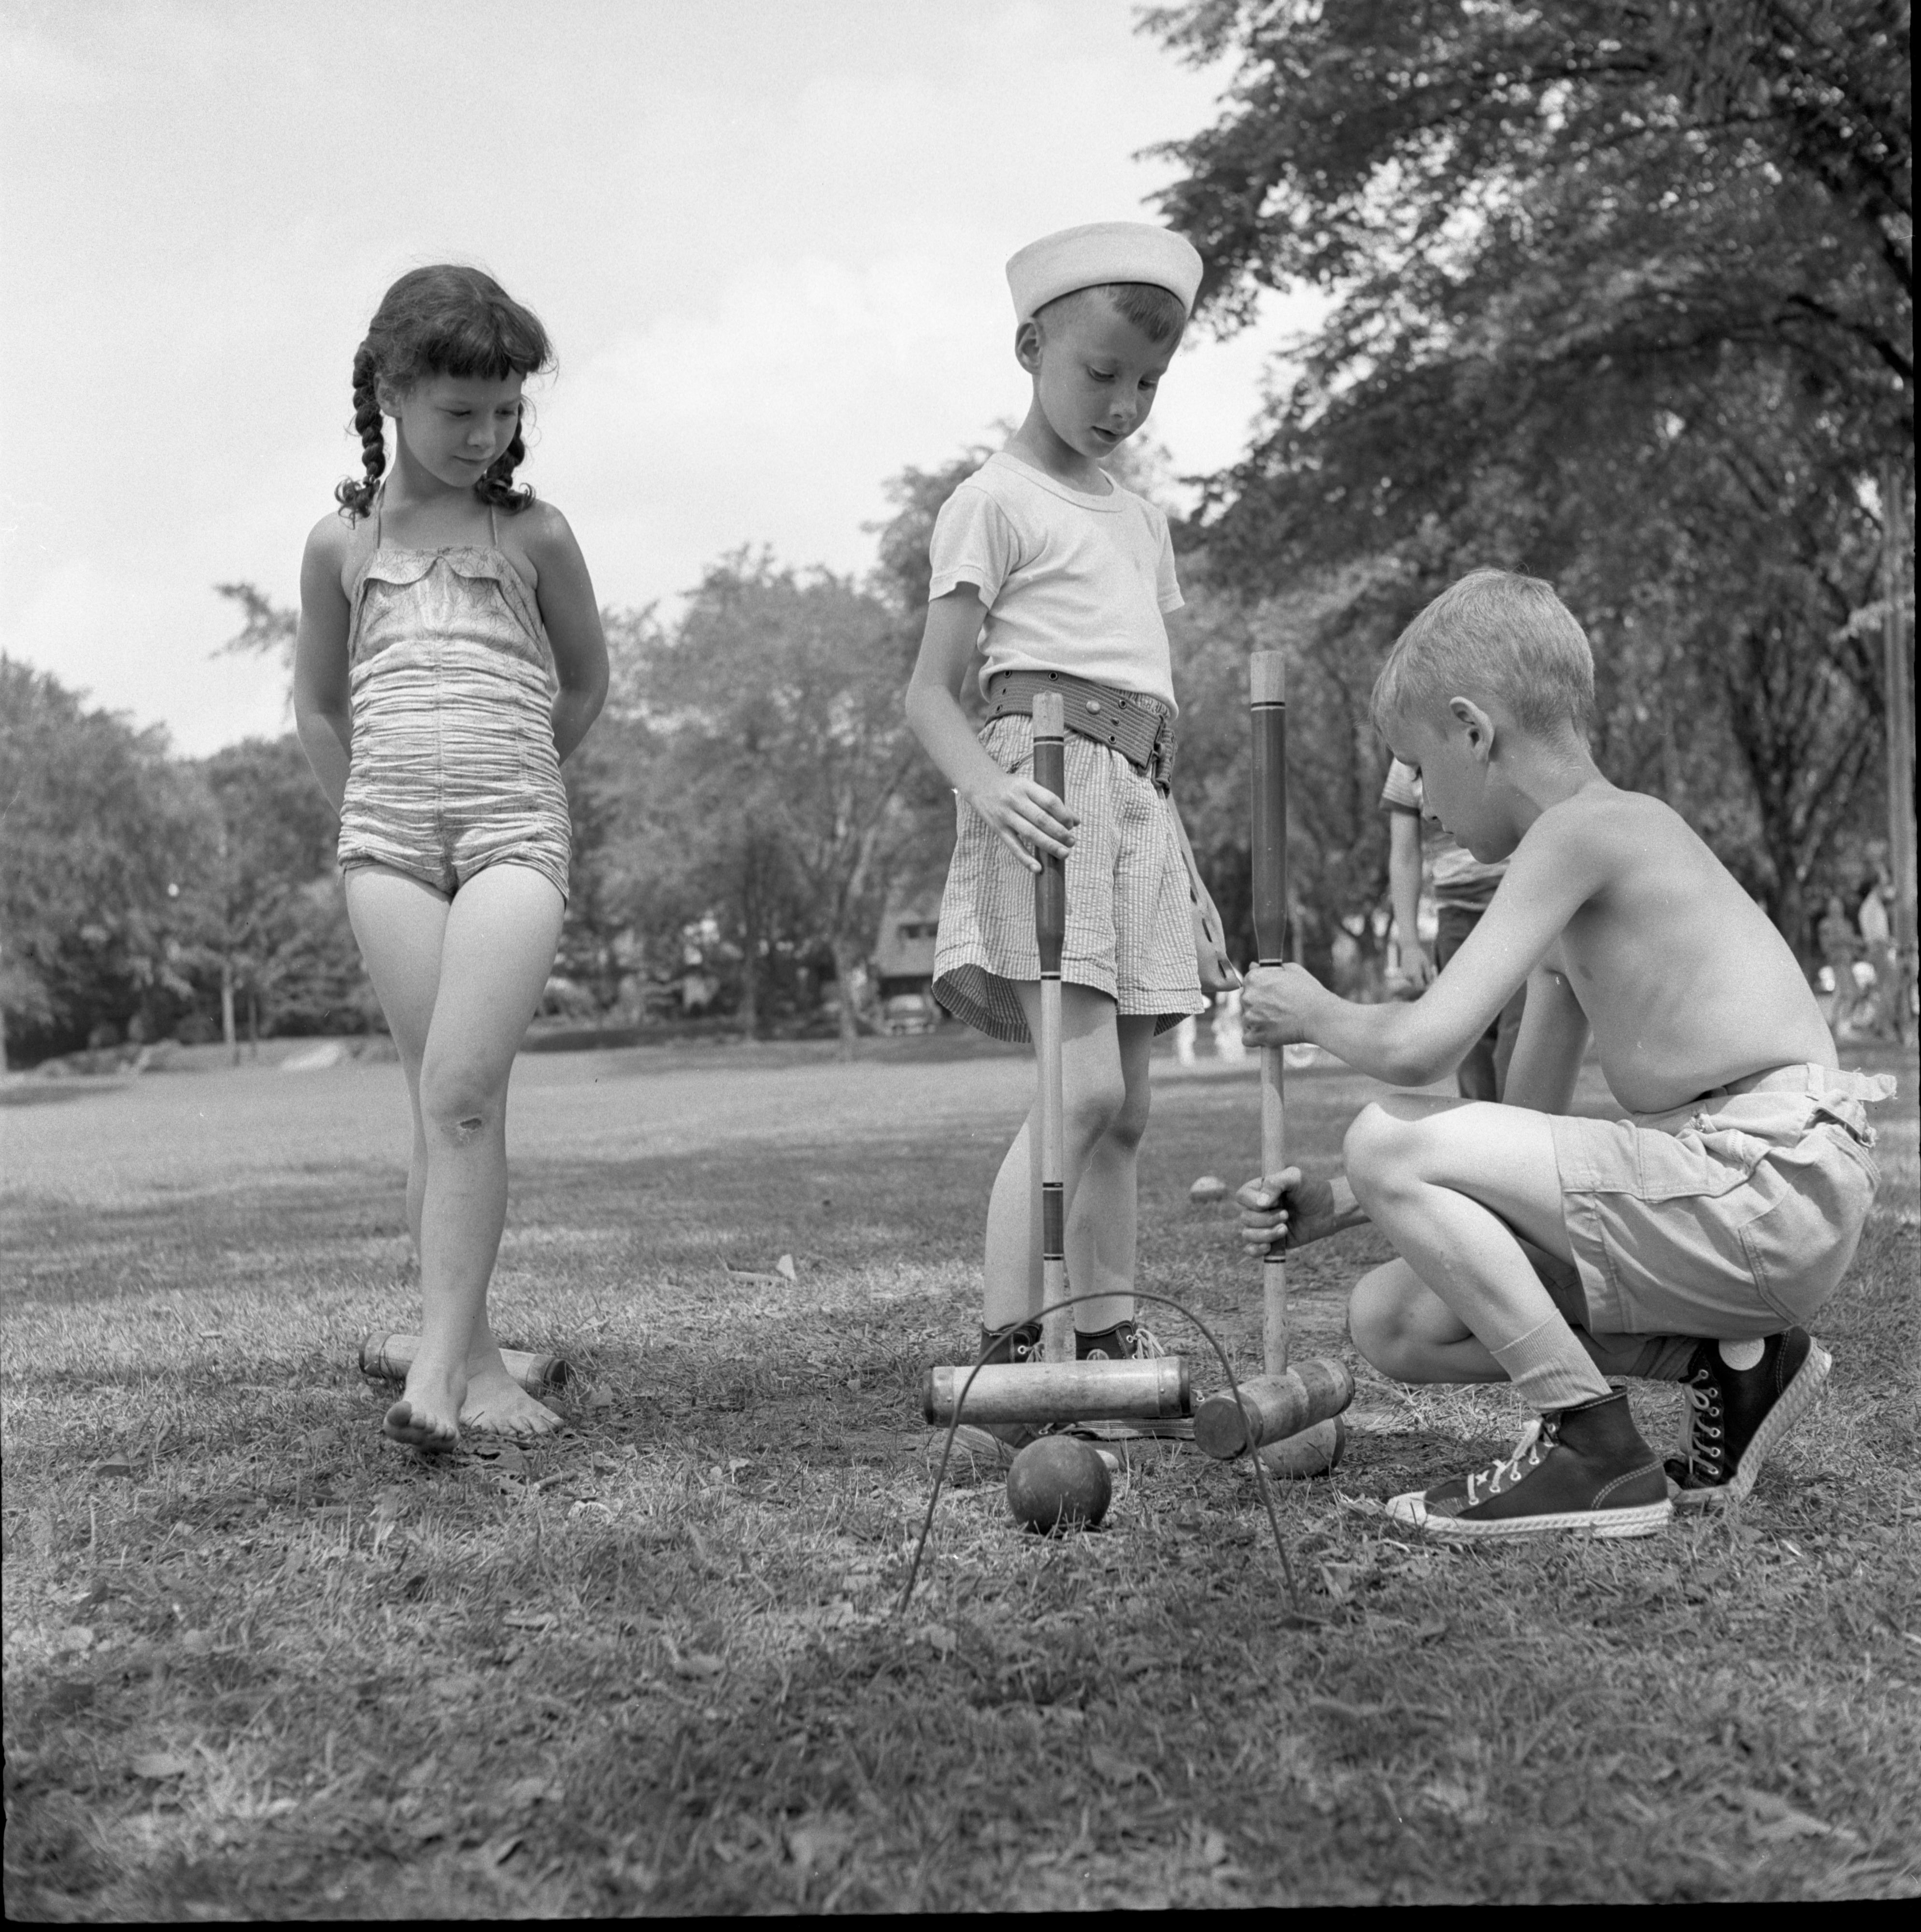 Children Play Croquet At Burns Park, June 1957 image